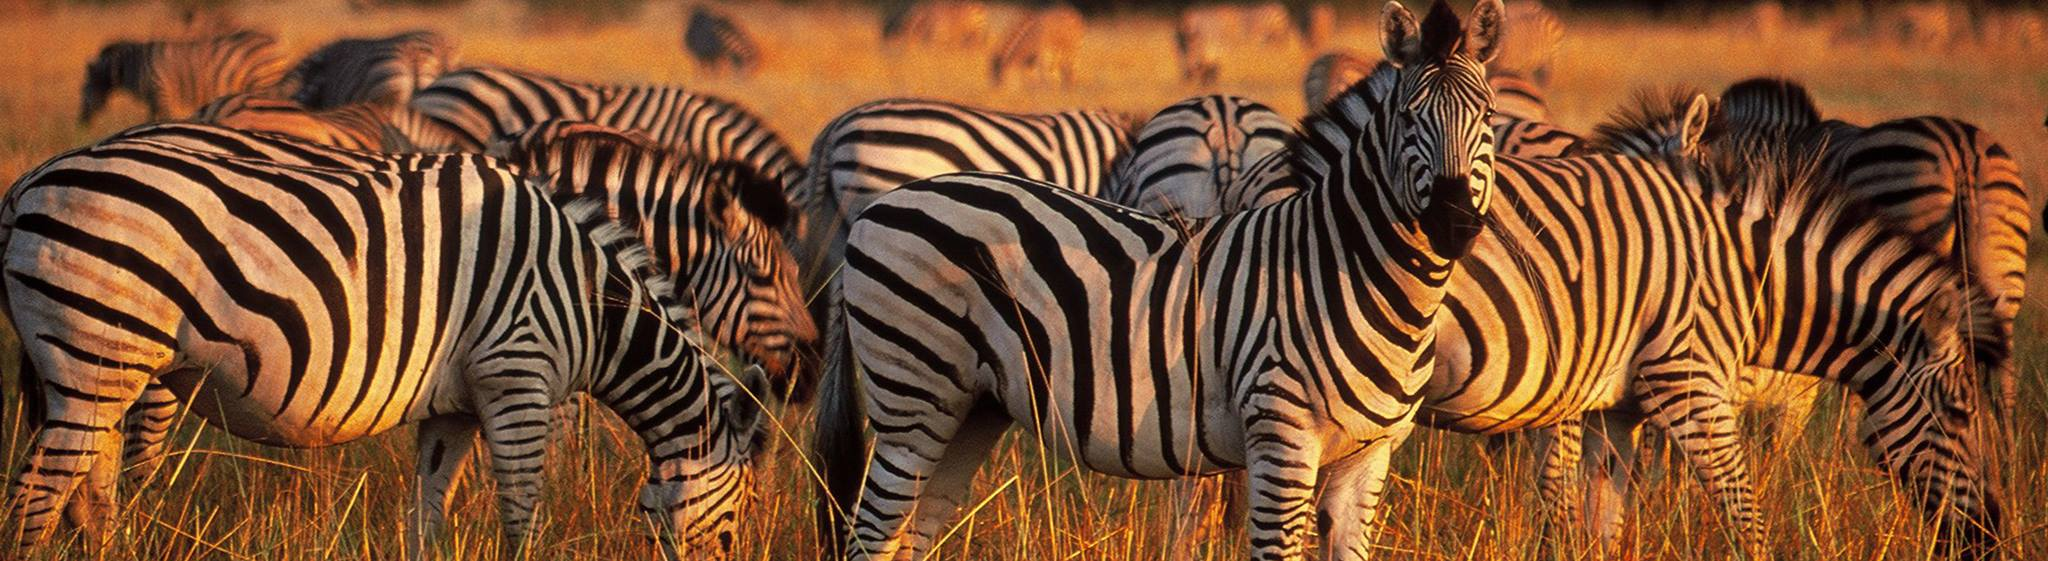 Tanzania Safaris and Beach Vacations - Safanta Tours & Travel Company Limited